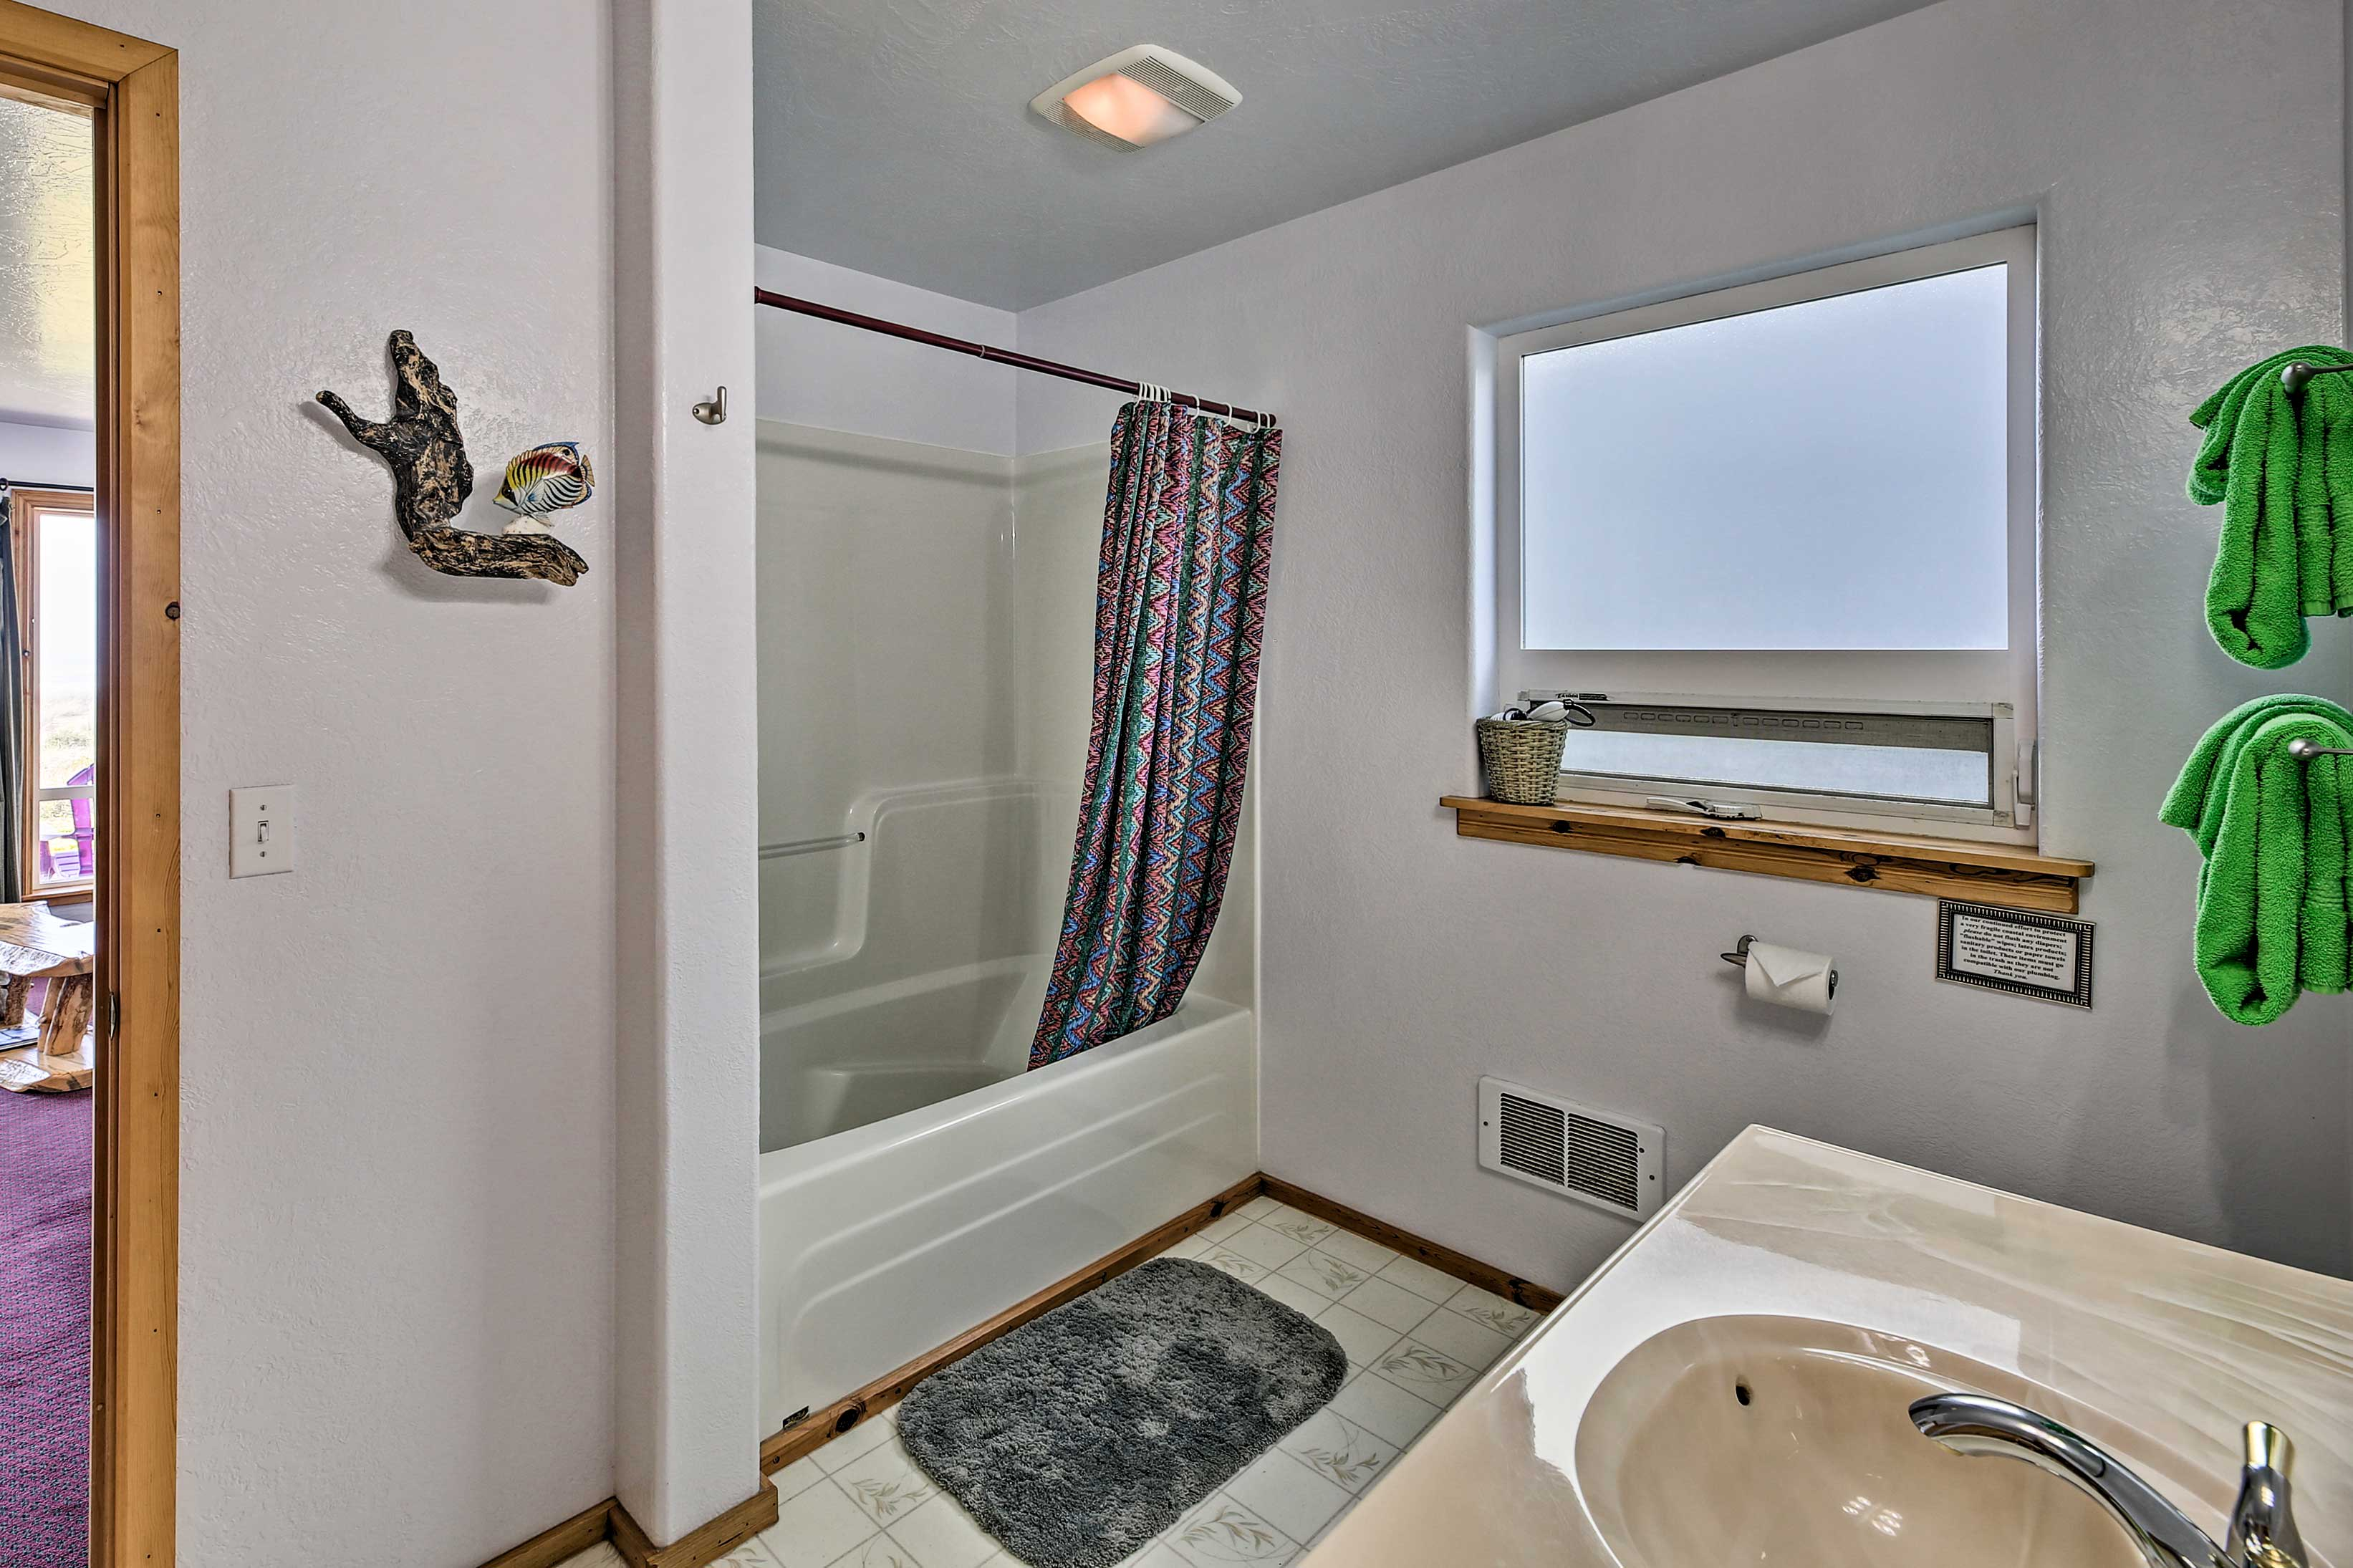 Take a long bath in the shower/tub combo.